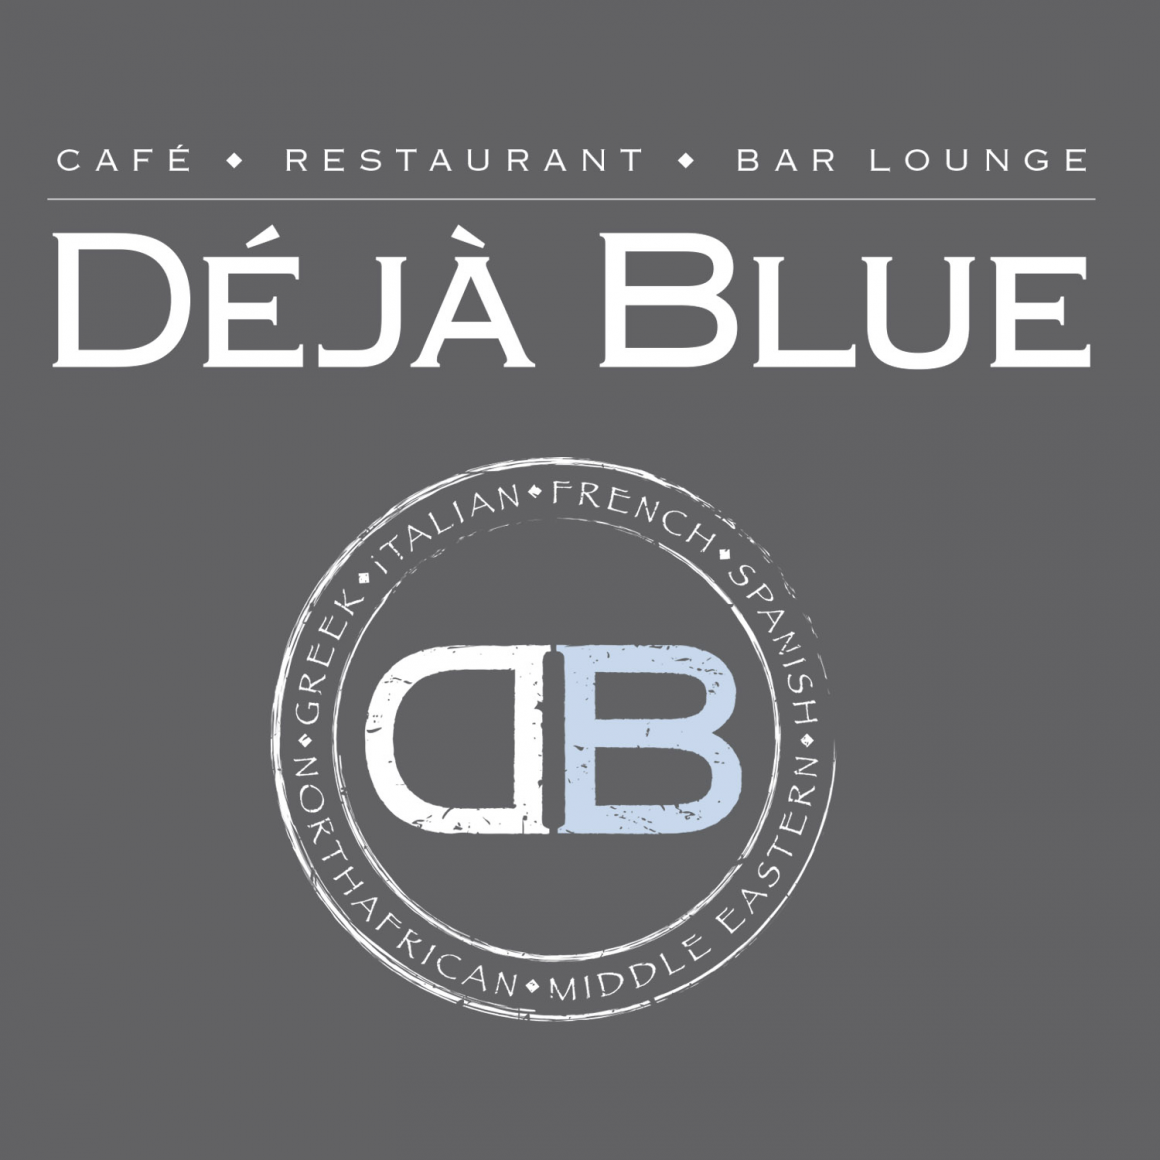 DÉJÀ BLUE Family-Focused Mediterranean Style Restaurant Parkland Florida